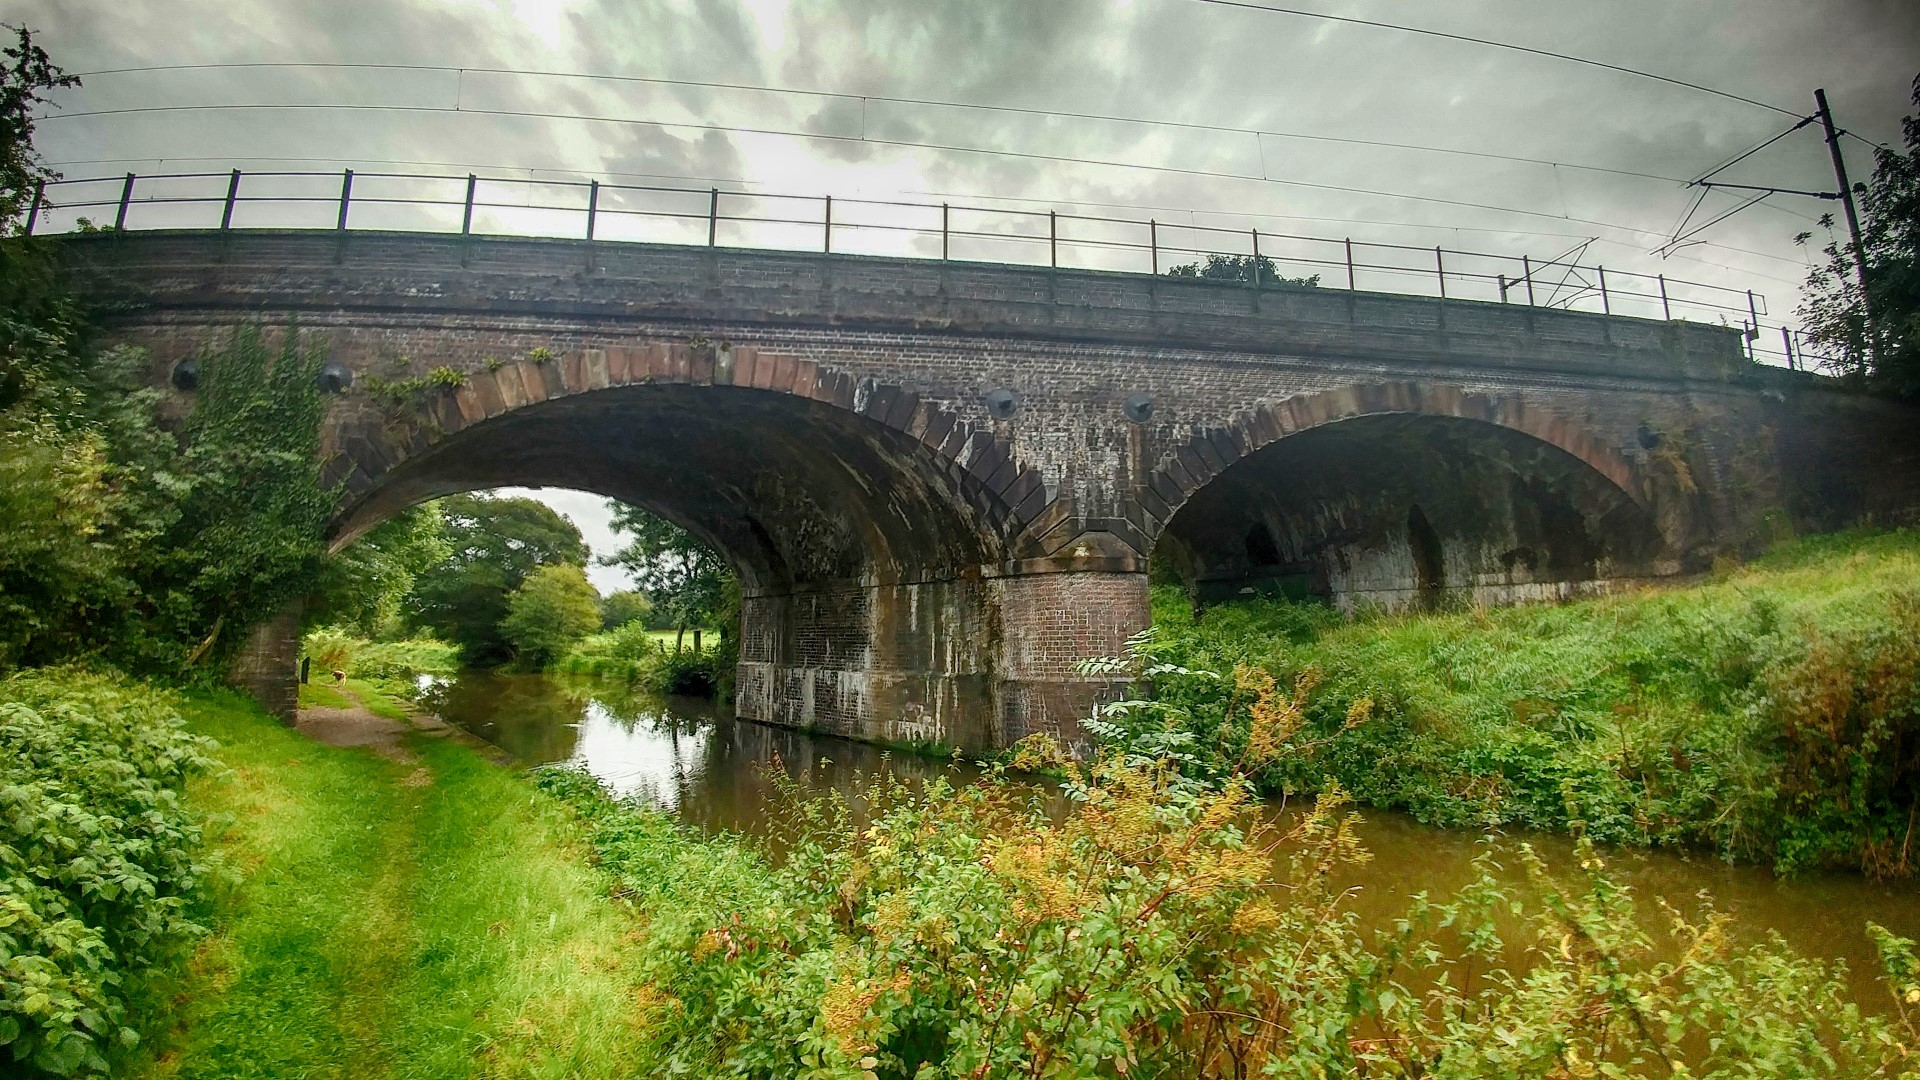 Main West Coast Railway line over the canal, in between Bridge 59 and 60